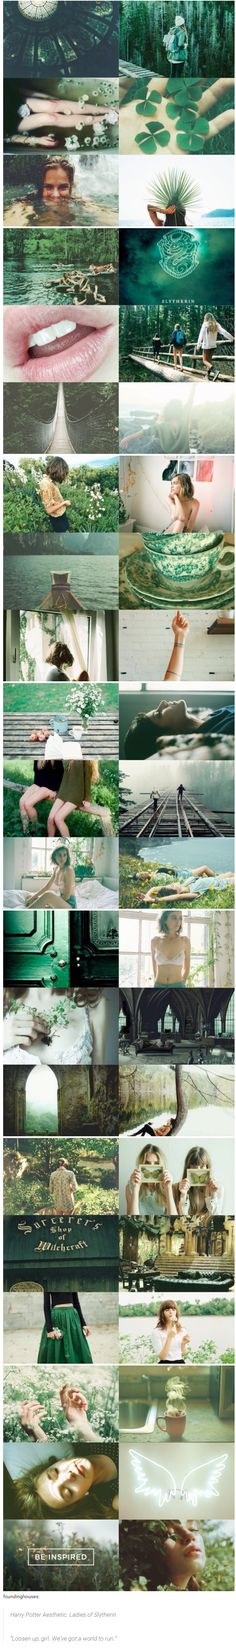 """foundinghouses: Harry Potter Aesthetic: Ladies of Slytherin 